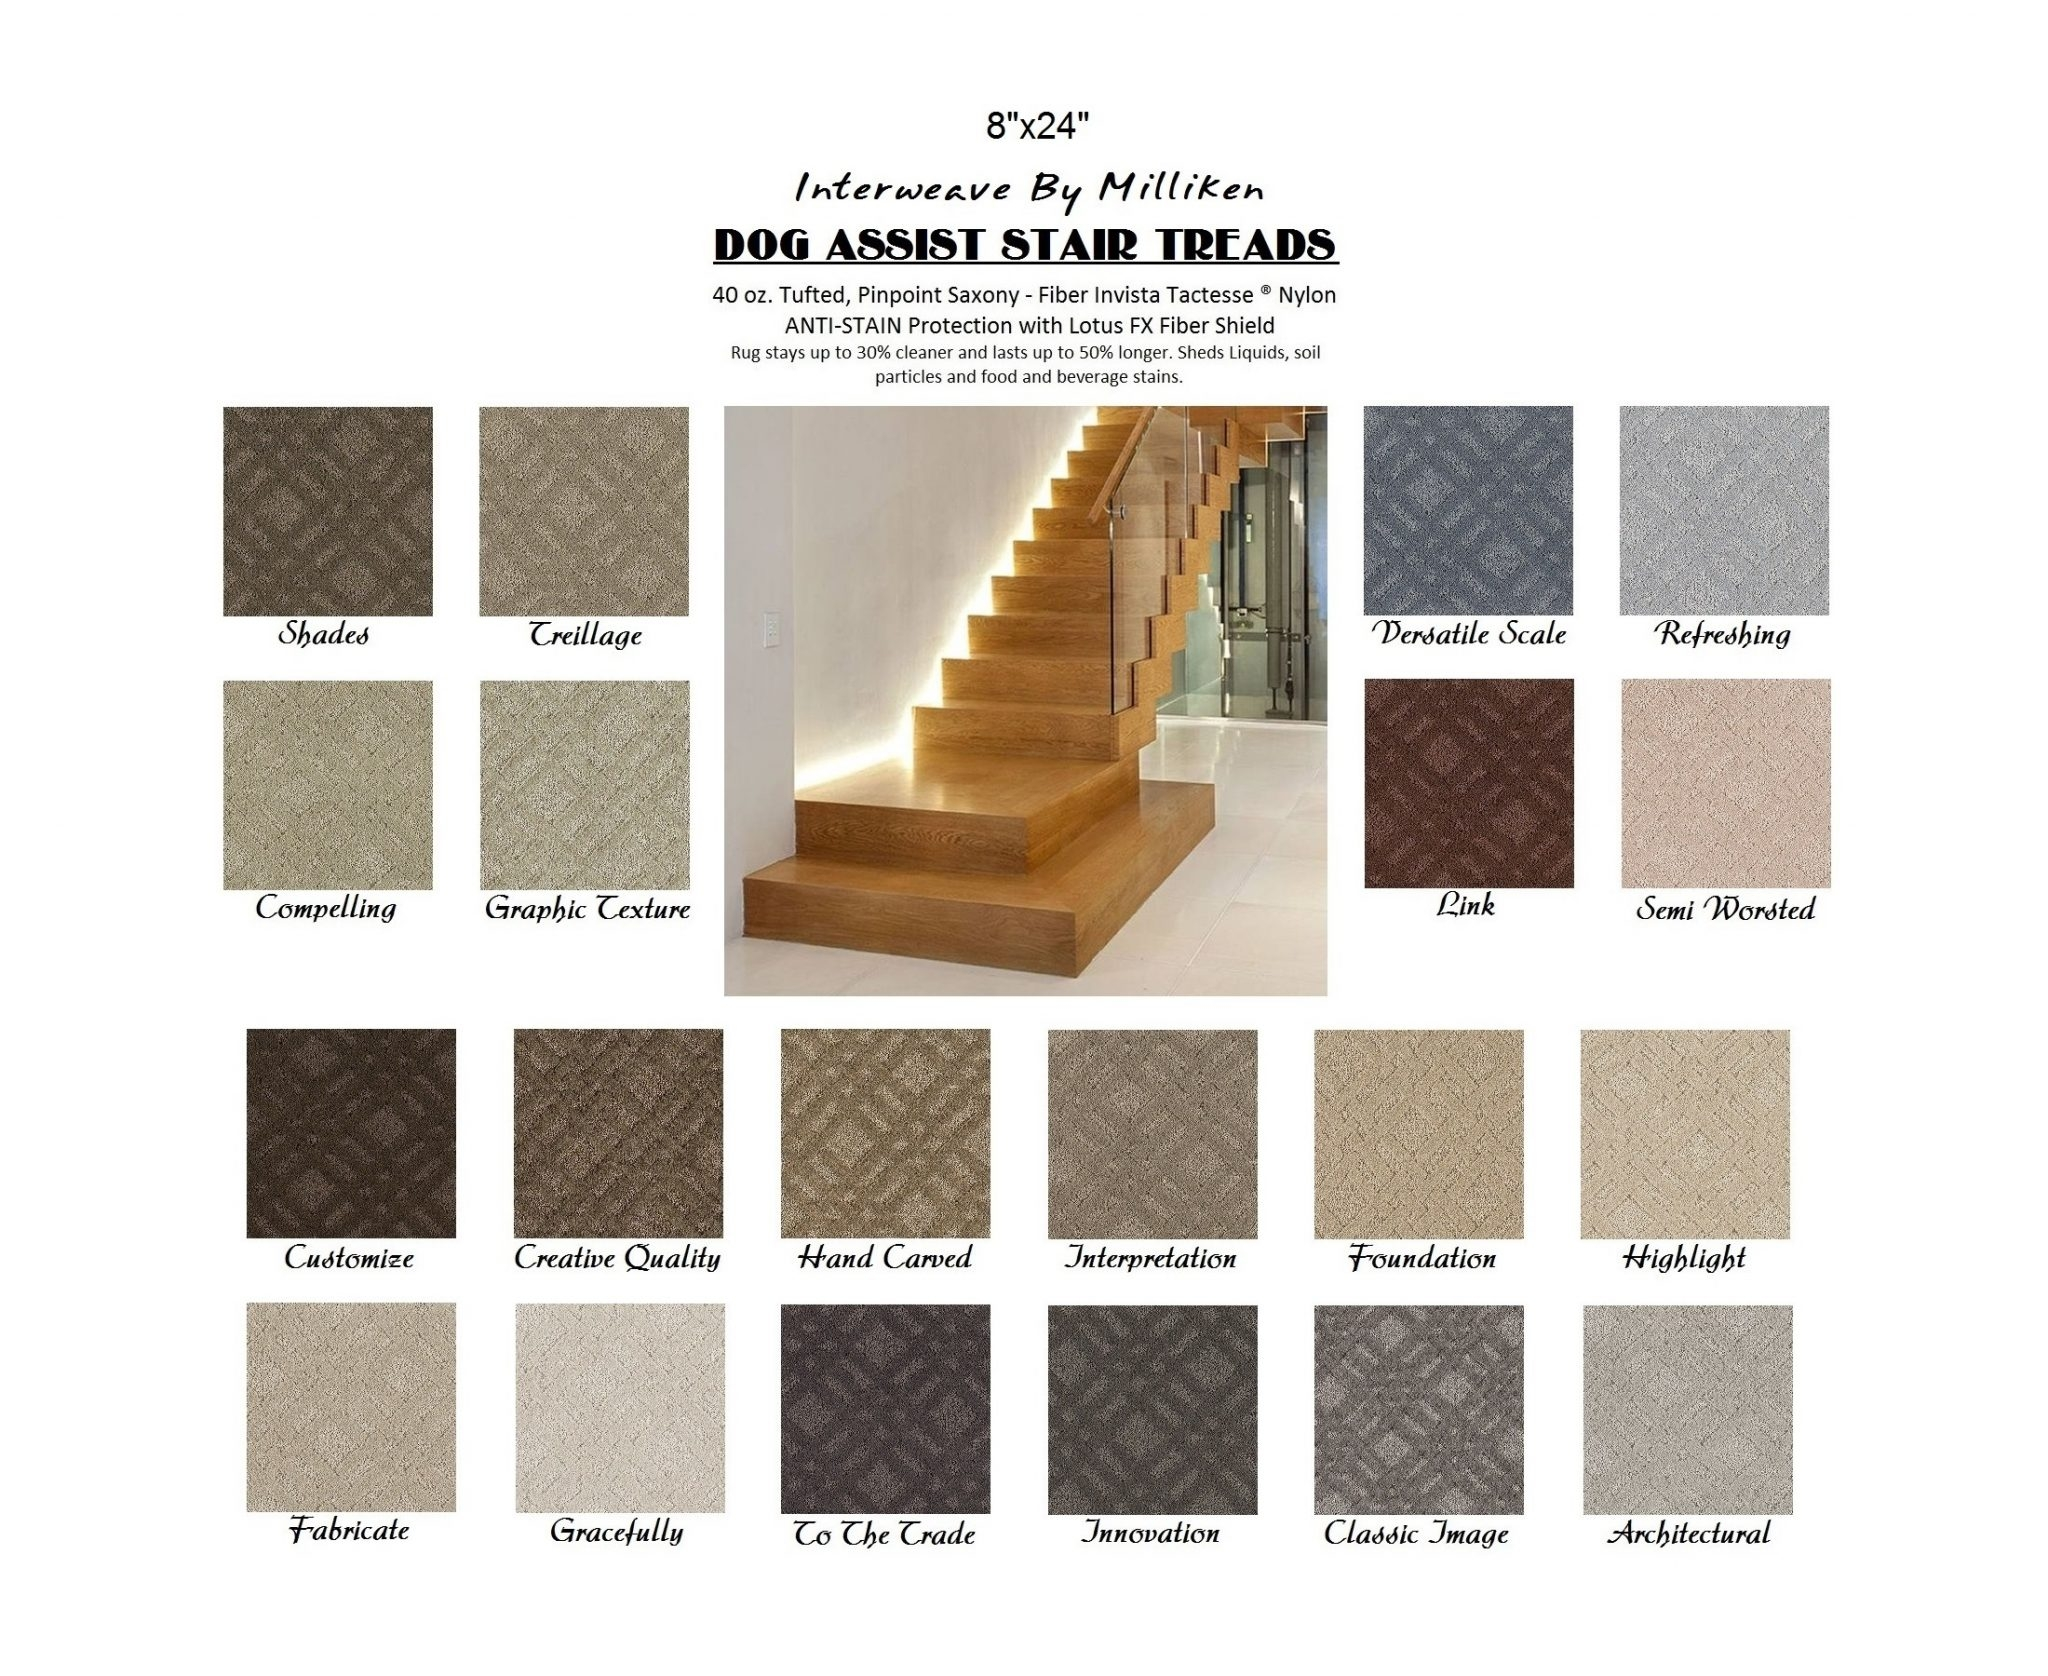 Dog Assist Carpet Stair Treads With Regard To Carpet Stair Treads For Dogs (#10 of 20)